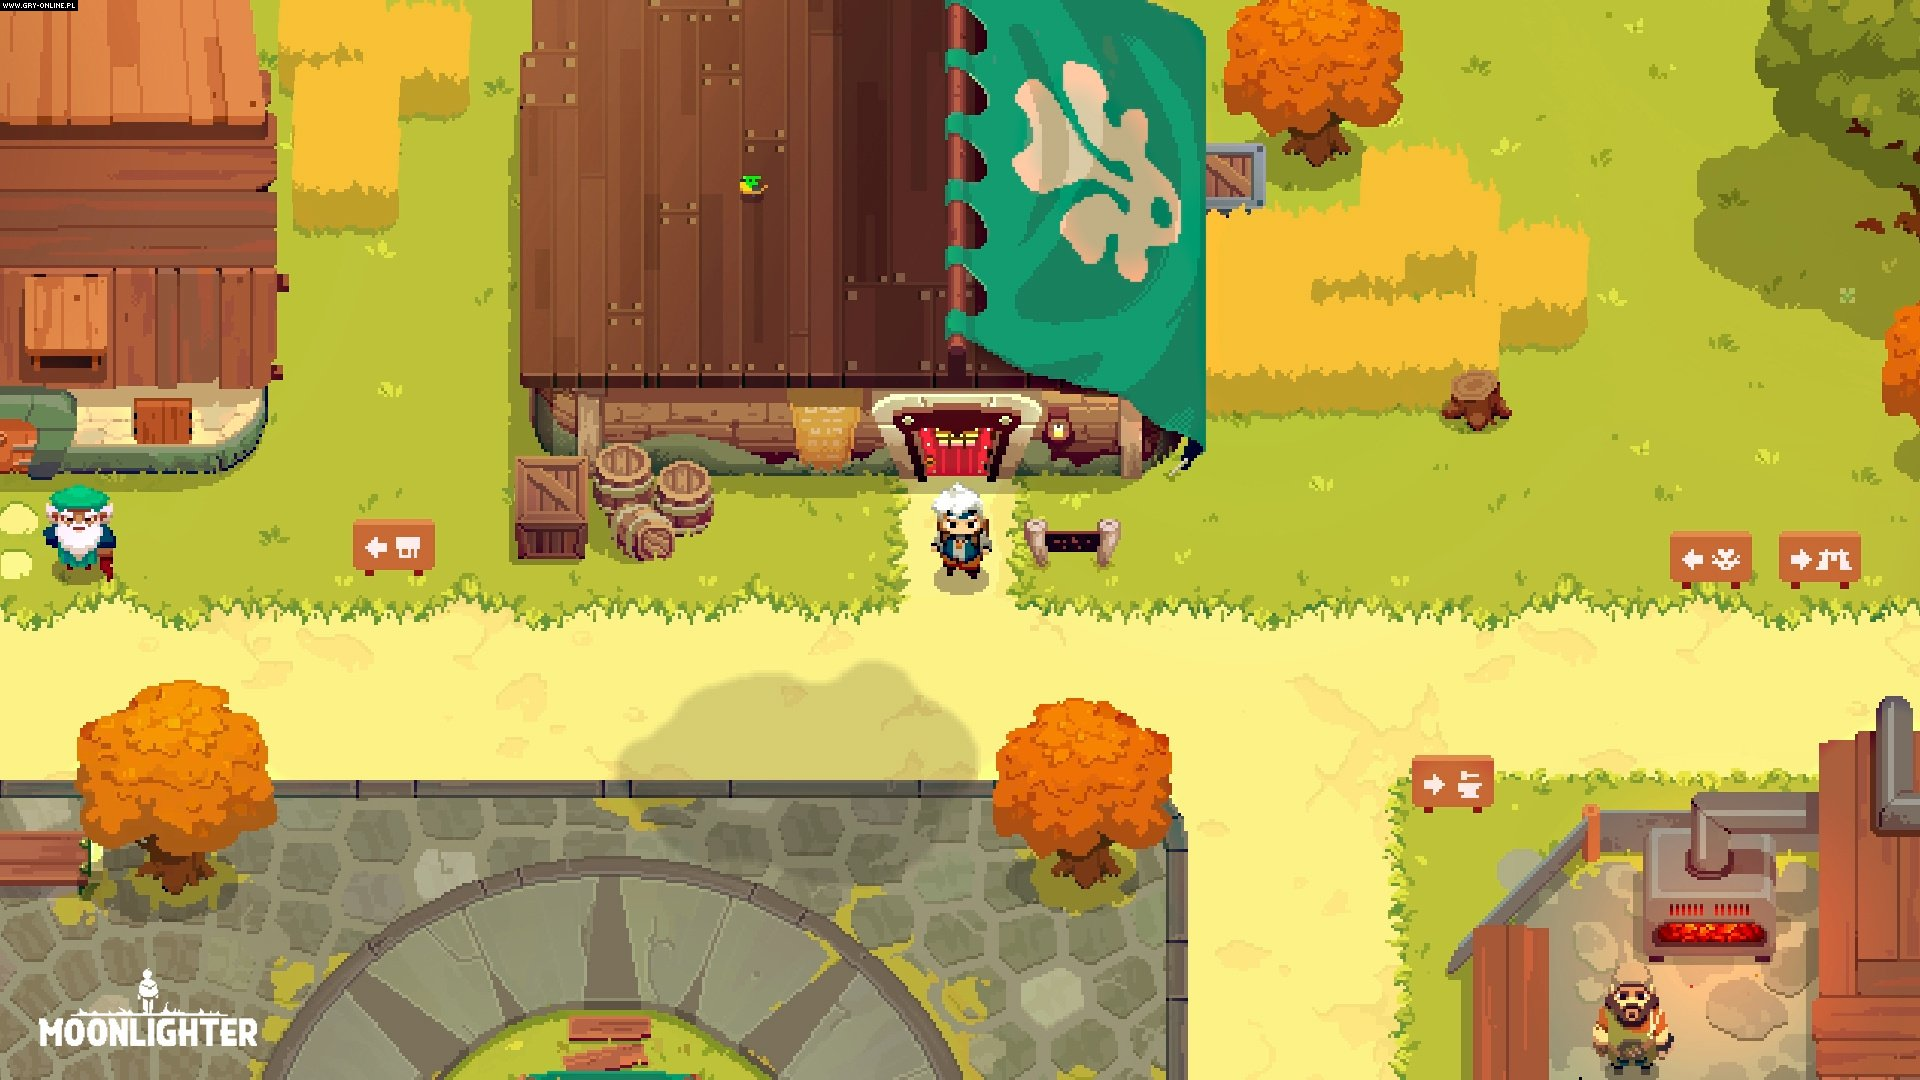 Moonlighter PC, PS4, XONE, Switch Gry Screen 17/25, Digital Sun Games, 11 bit studios